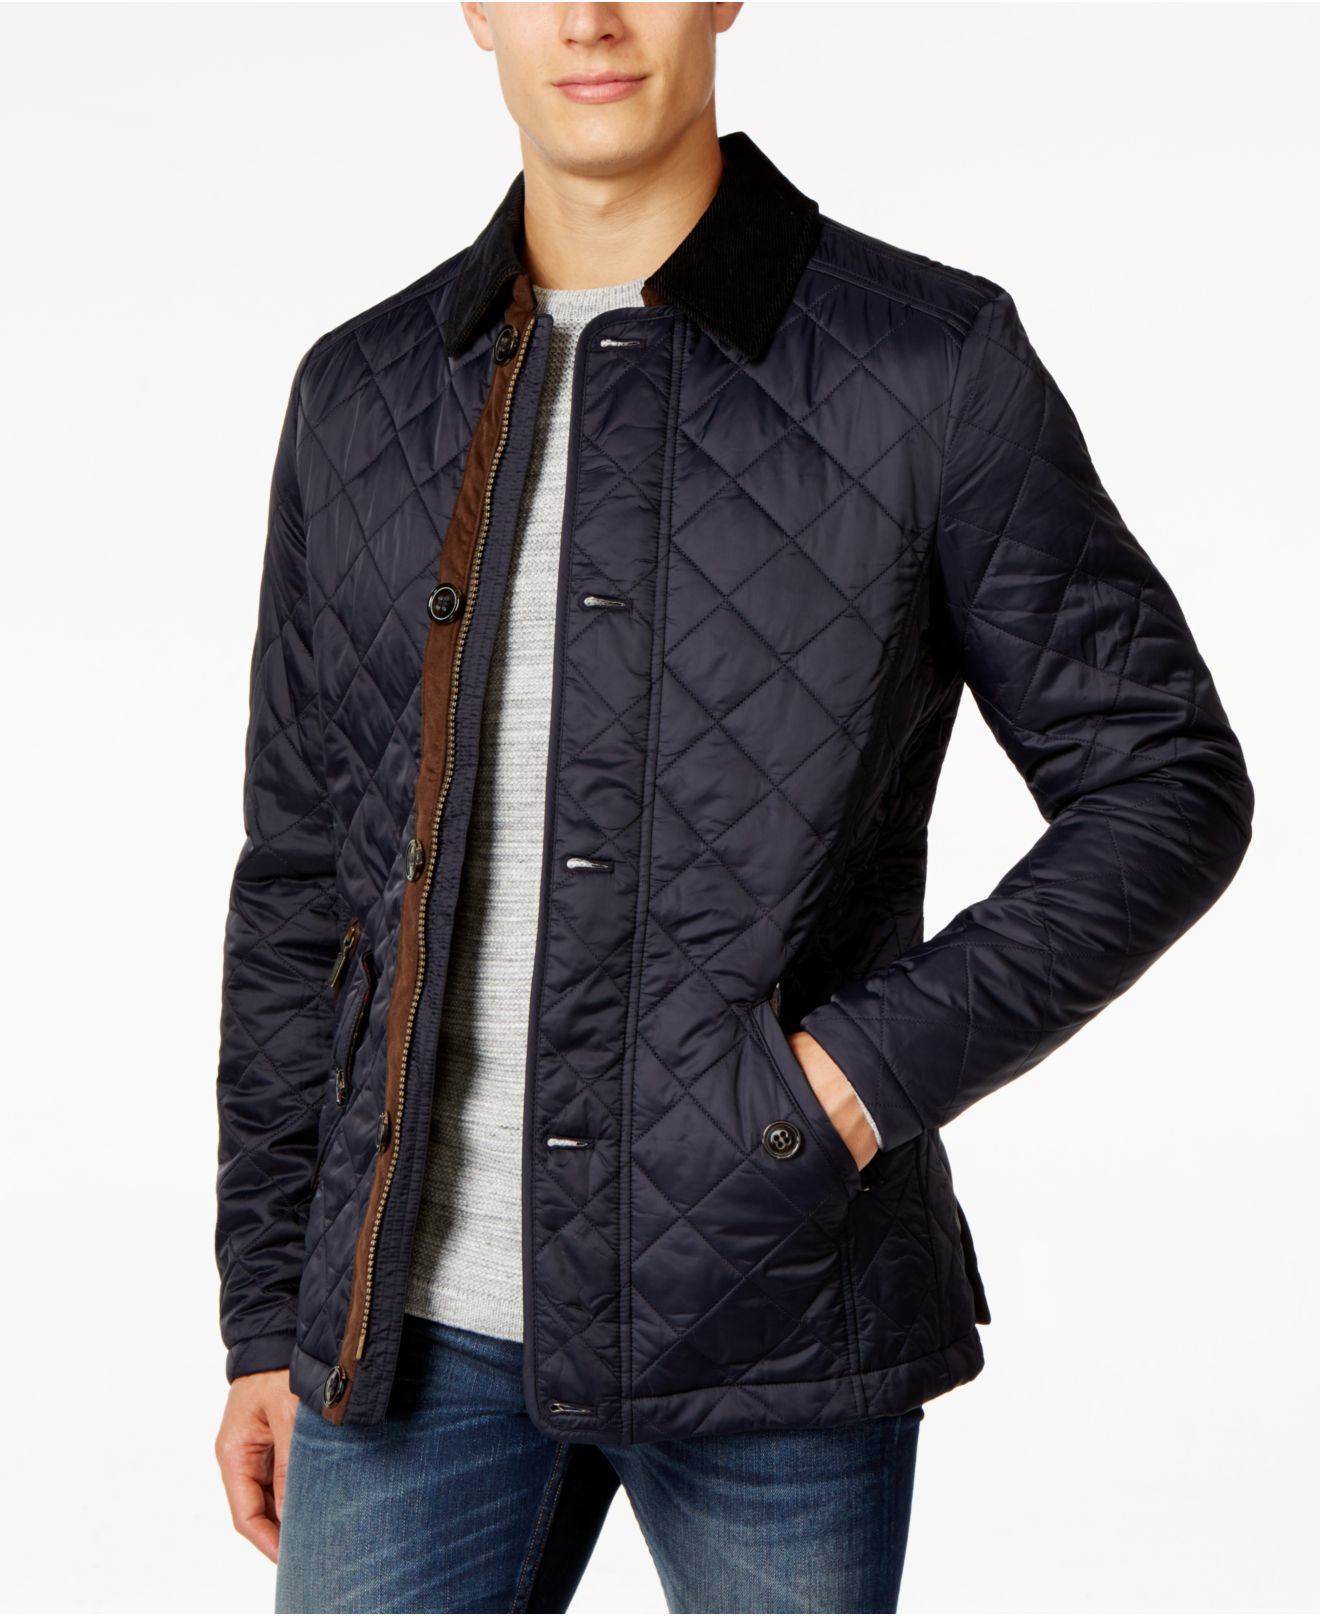 quilt smyths quilted bullfinch products barbour jacket black in